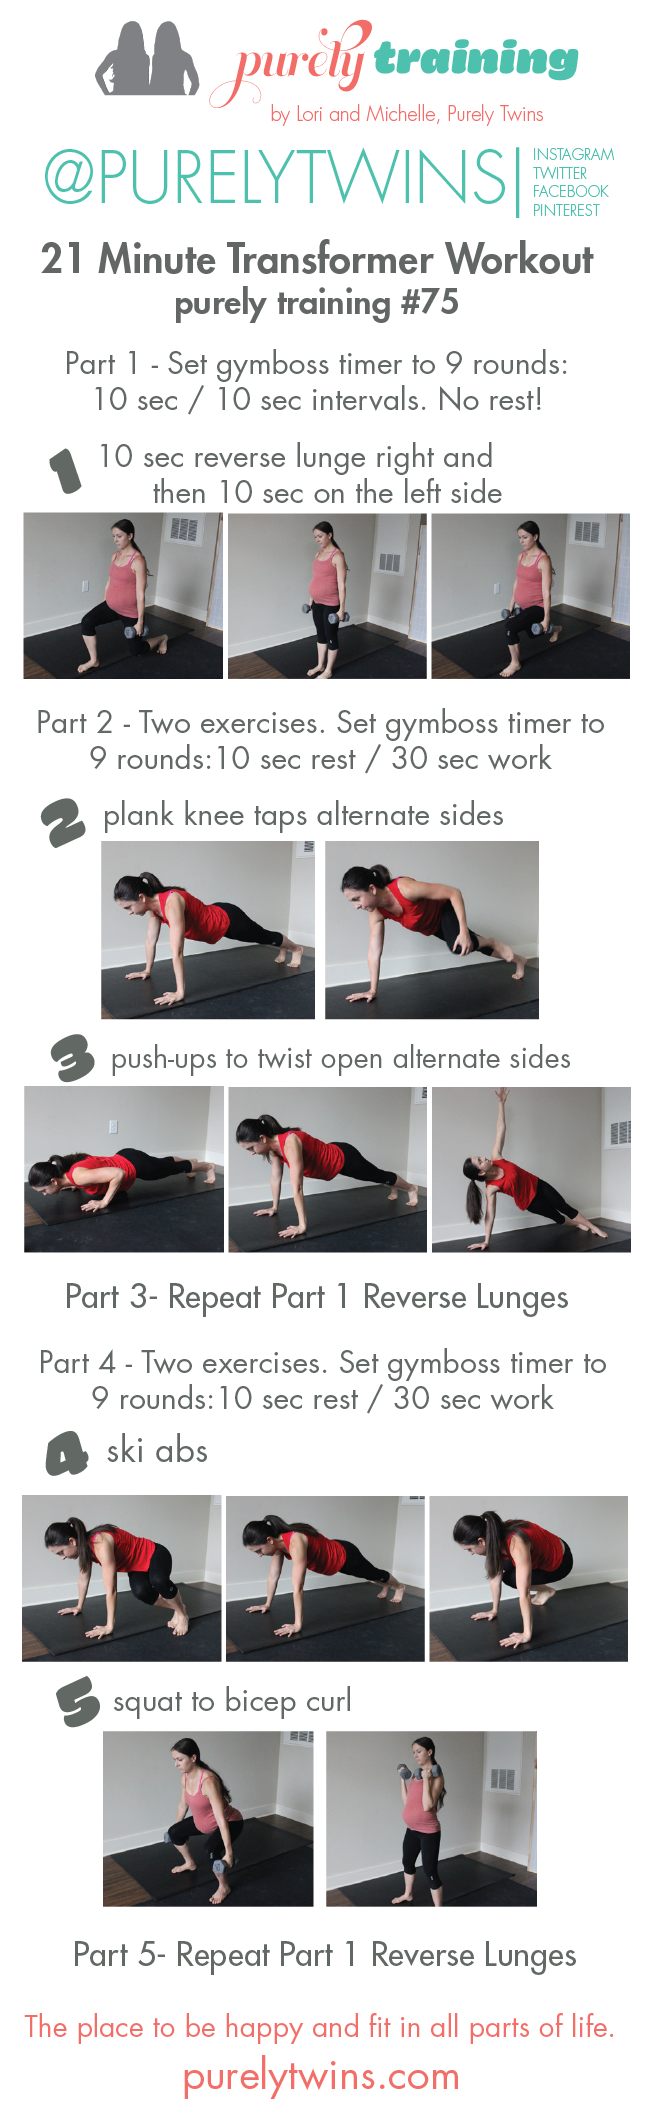 21mintransformer-purelytraining75workout